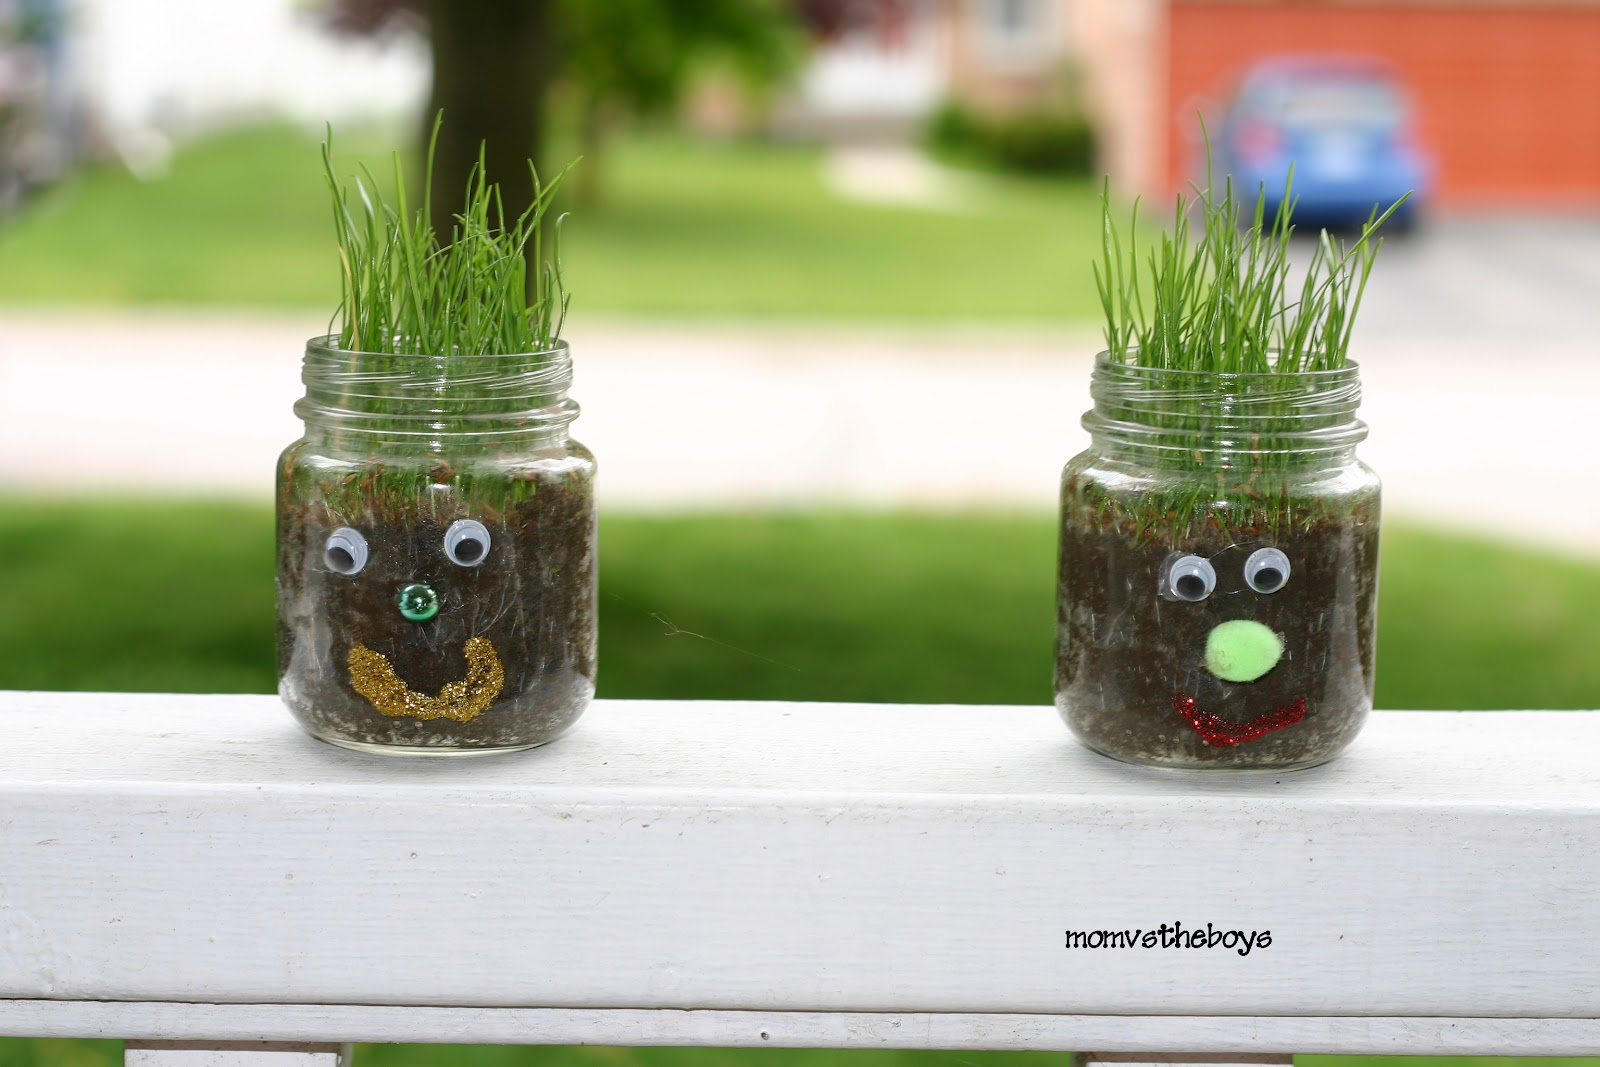 Spring Gardening Craft for kids. Meet Hairy  A Spring Gardening Craft for Kids